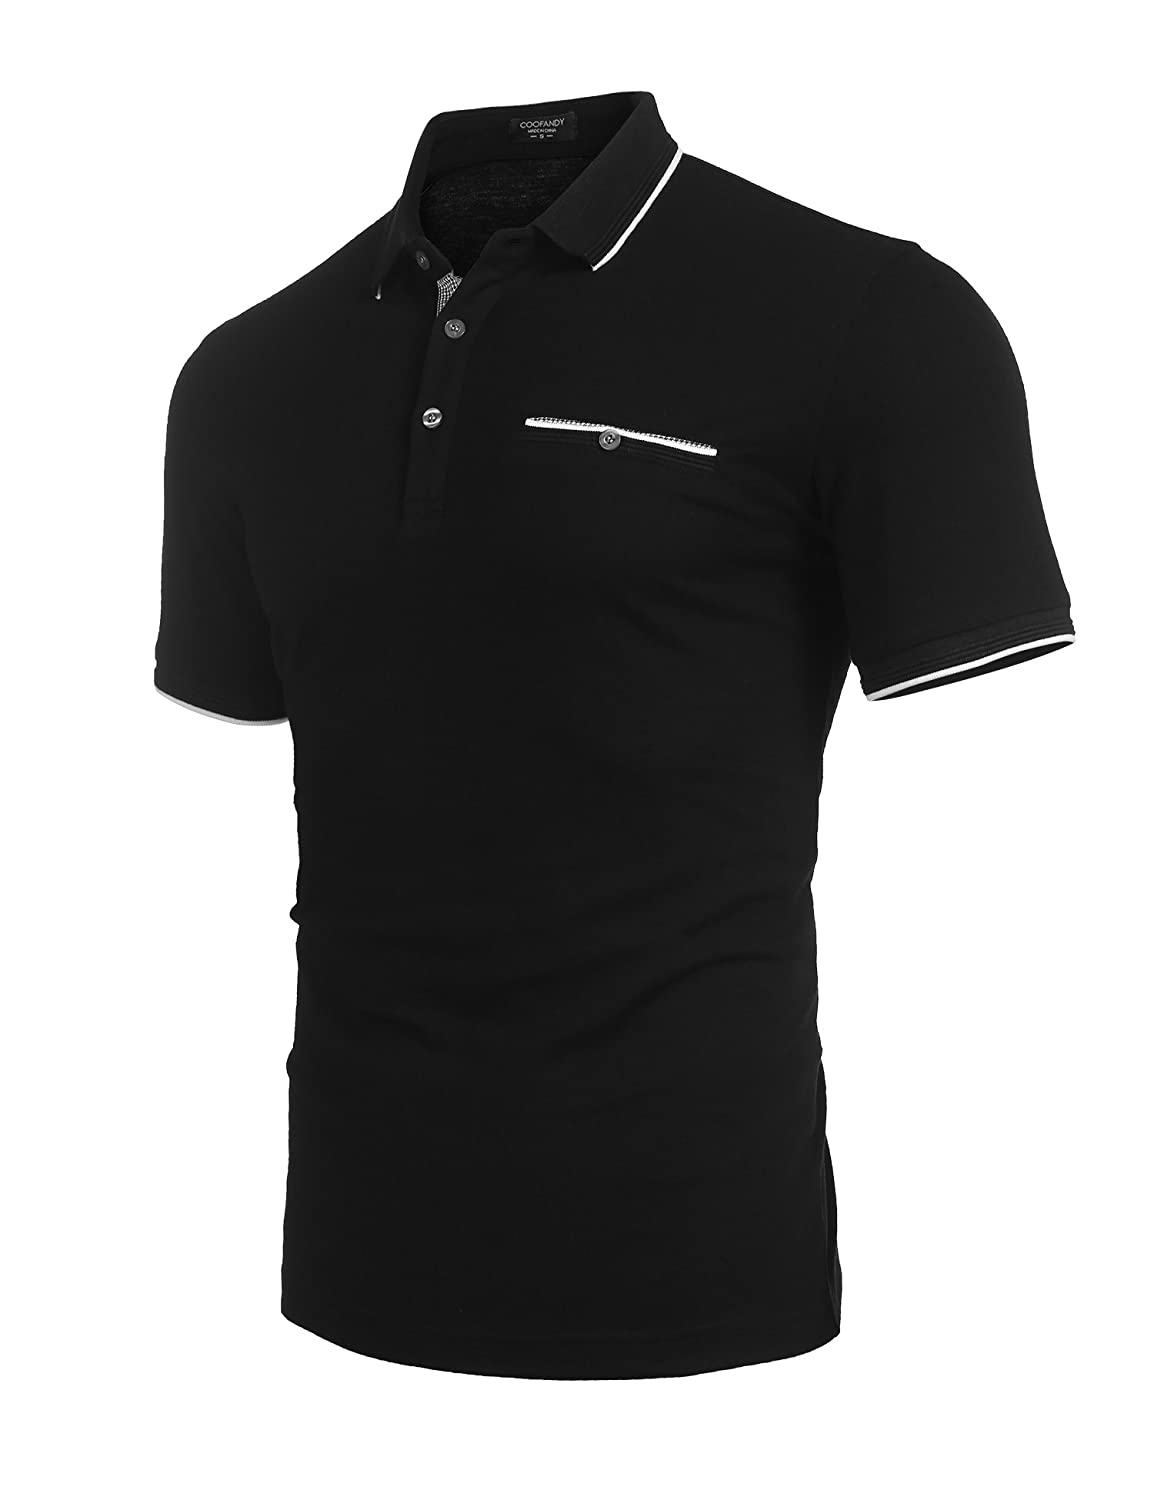 Coofandy Mens Long Sleeve Polo Shirt Classic Casual Business Slim Fit Cotton Polo T Shirts